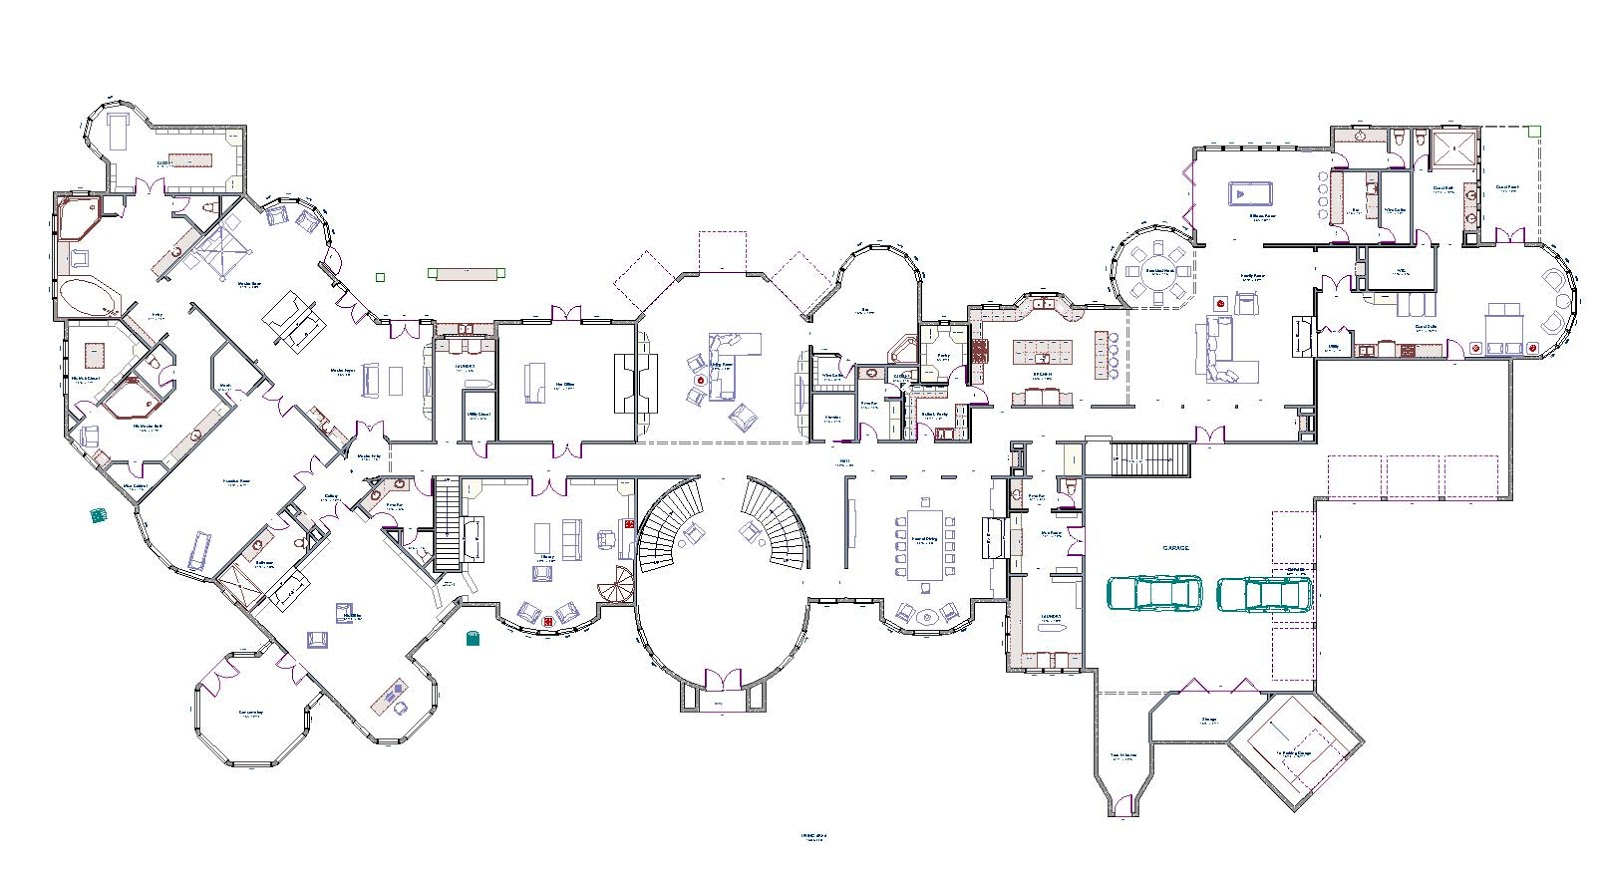 mansions more partial floor plans i have designed part 2